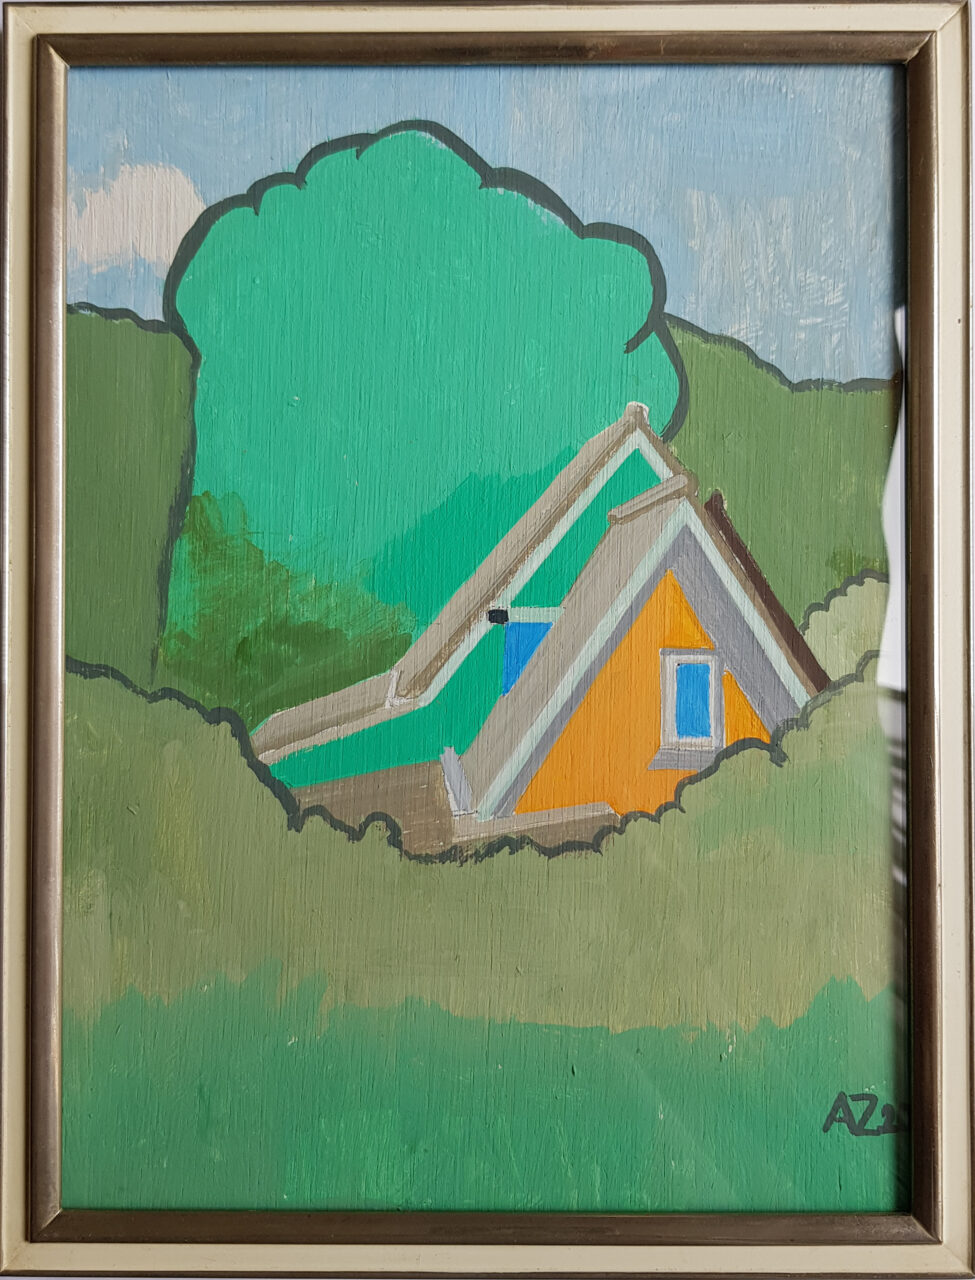 House in the Biesbosch, 2020. Vinylpaint on wooden panel, framed, 19x24cm, study